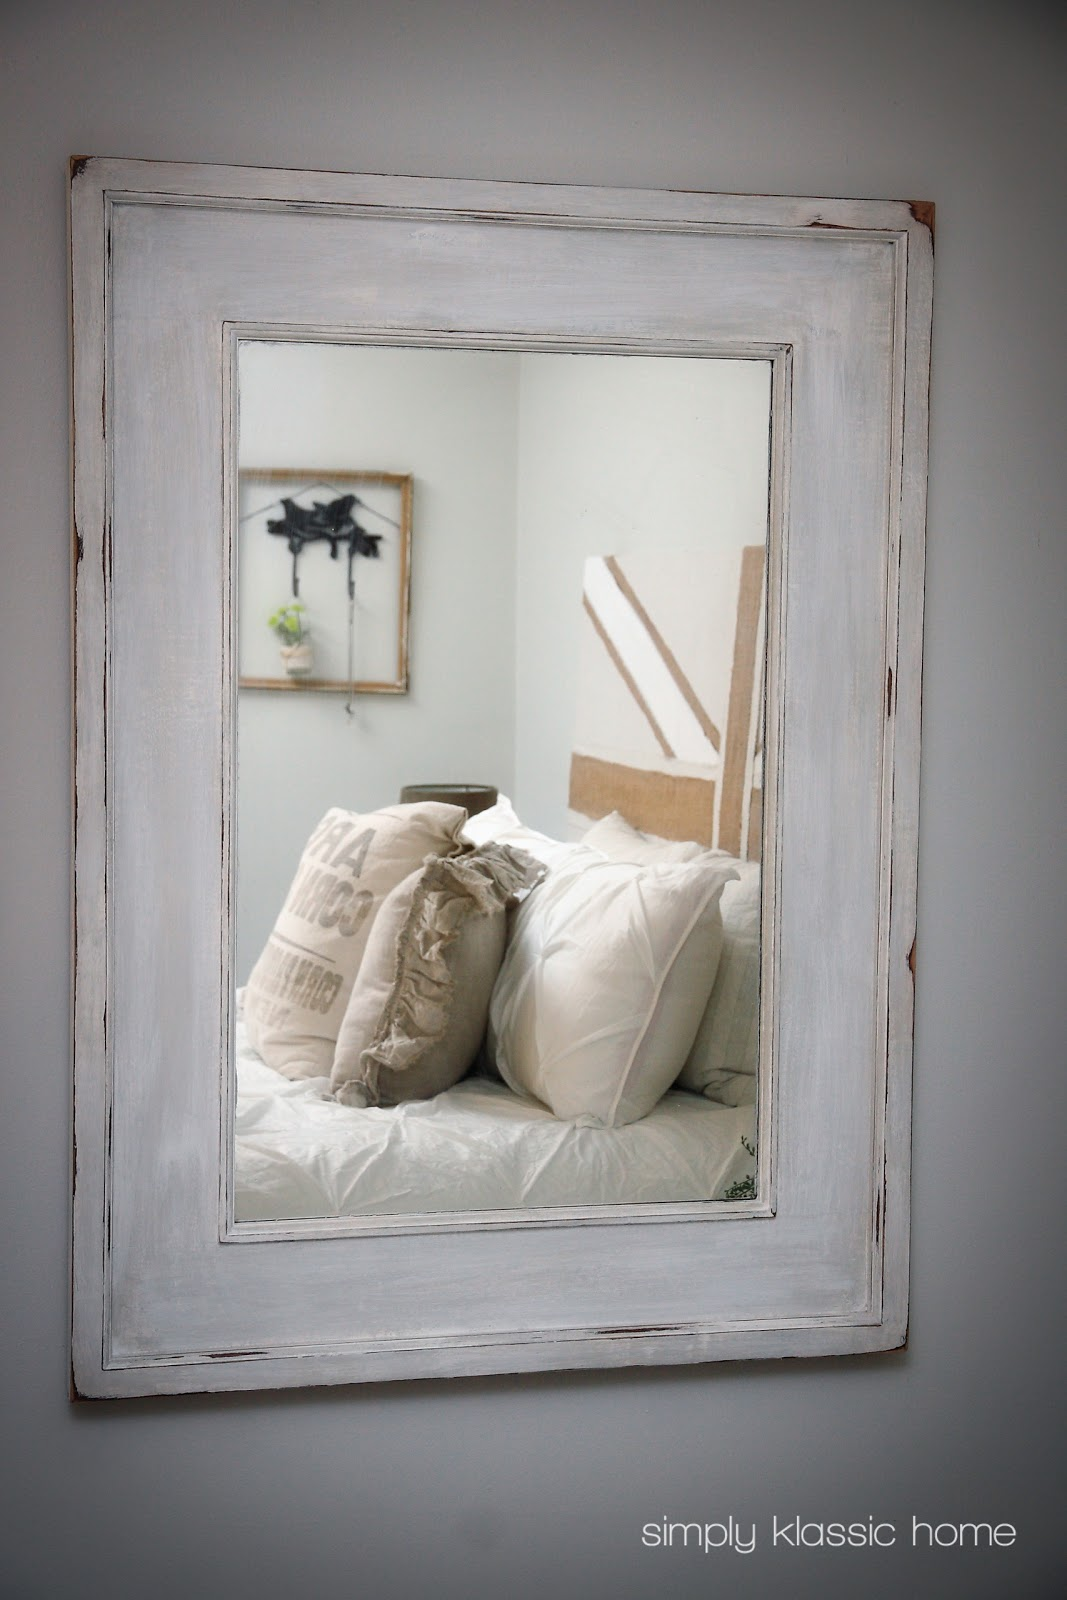 From Gardners 2 Bergers: Reader Feature: Shabby Chic